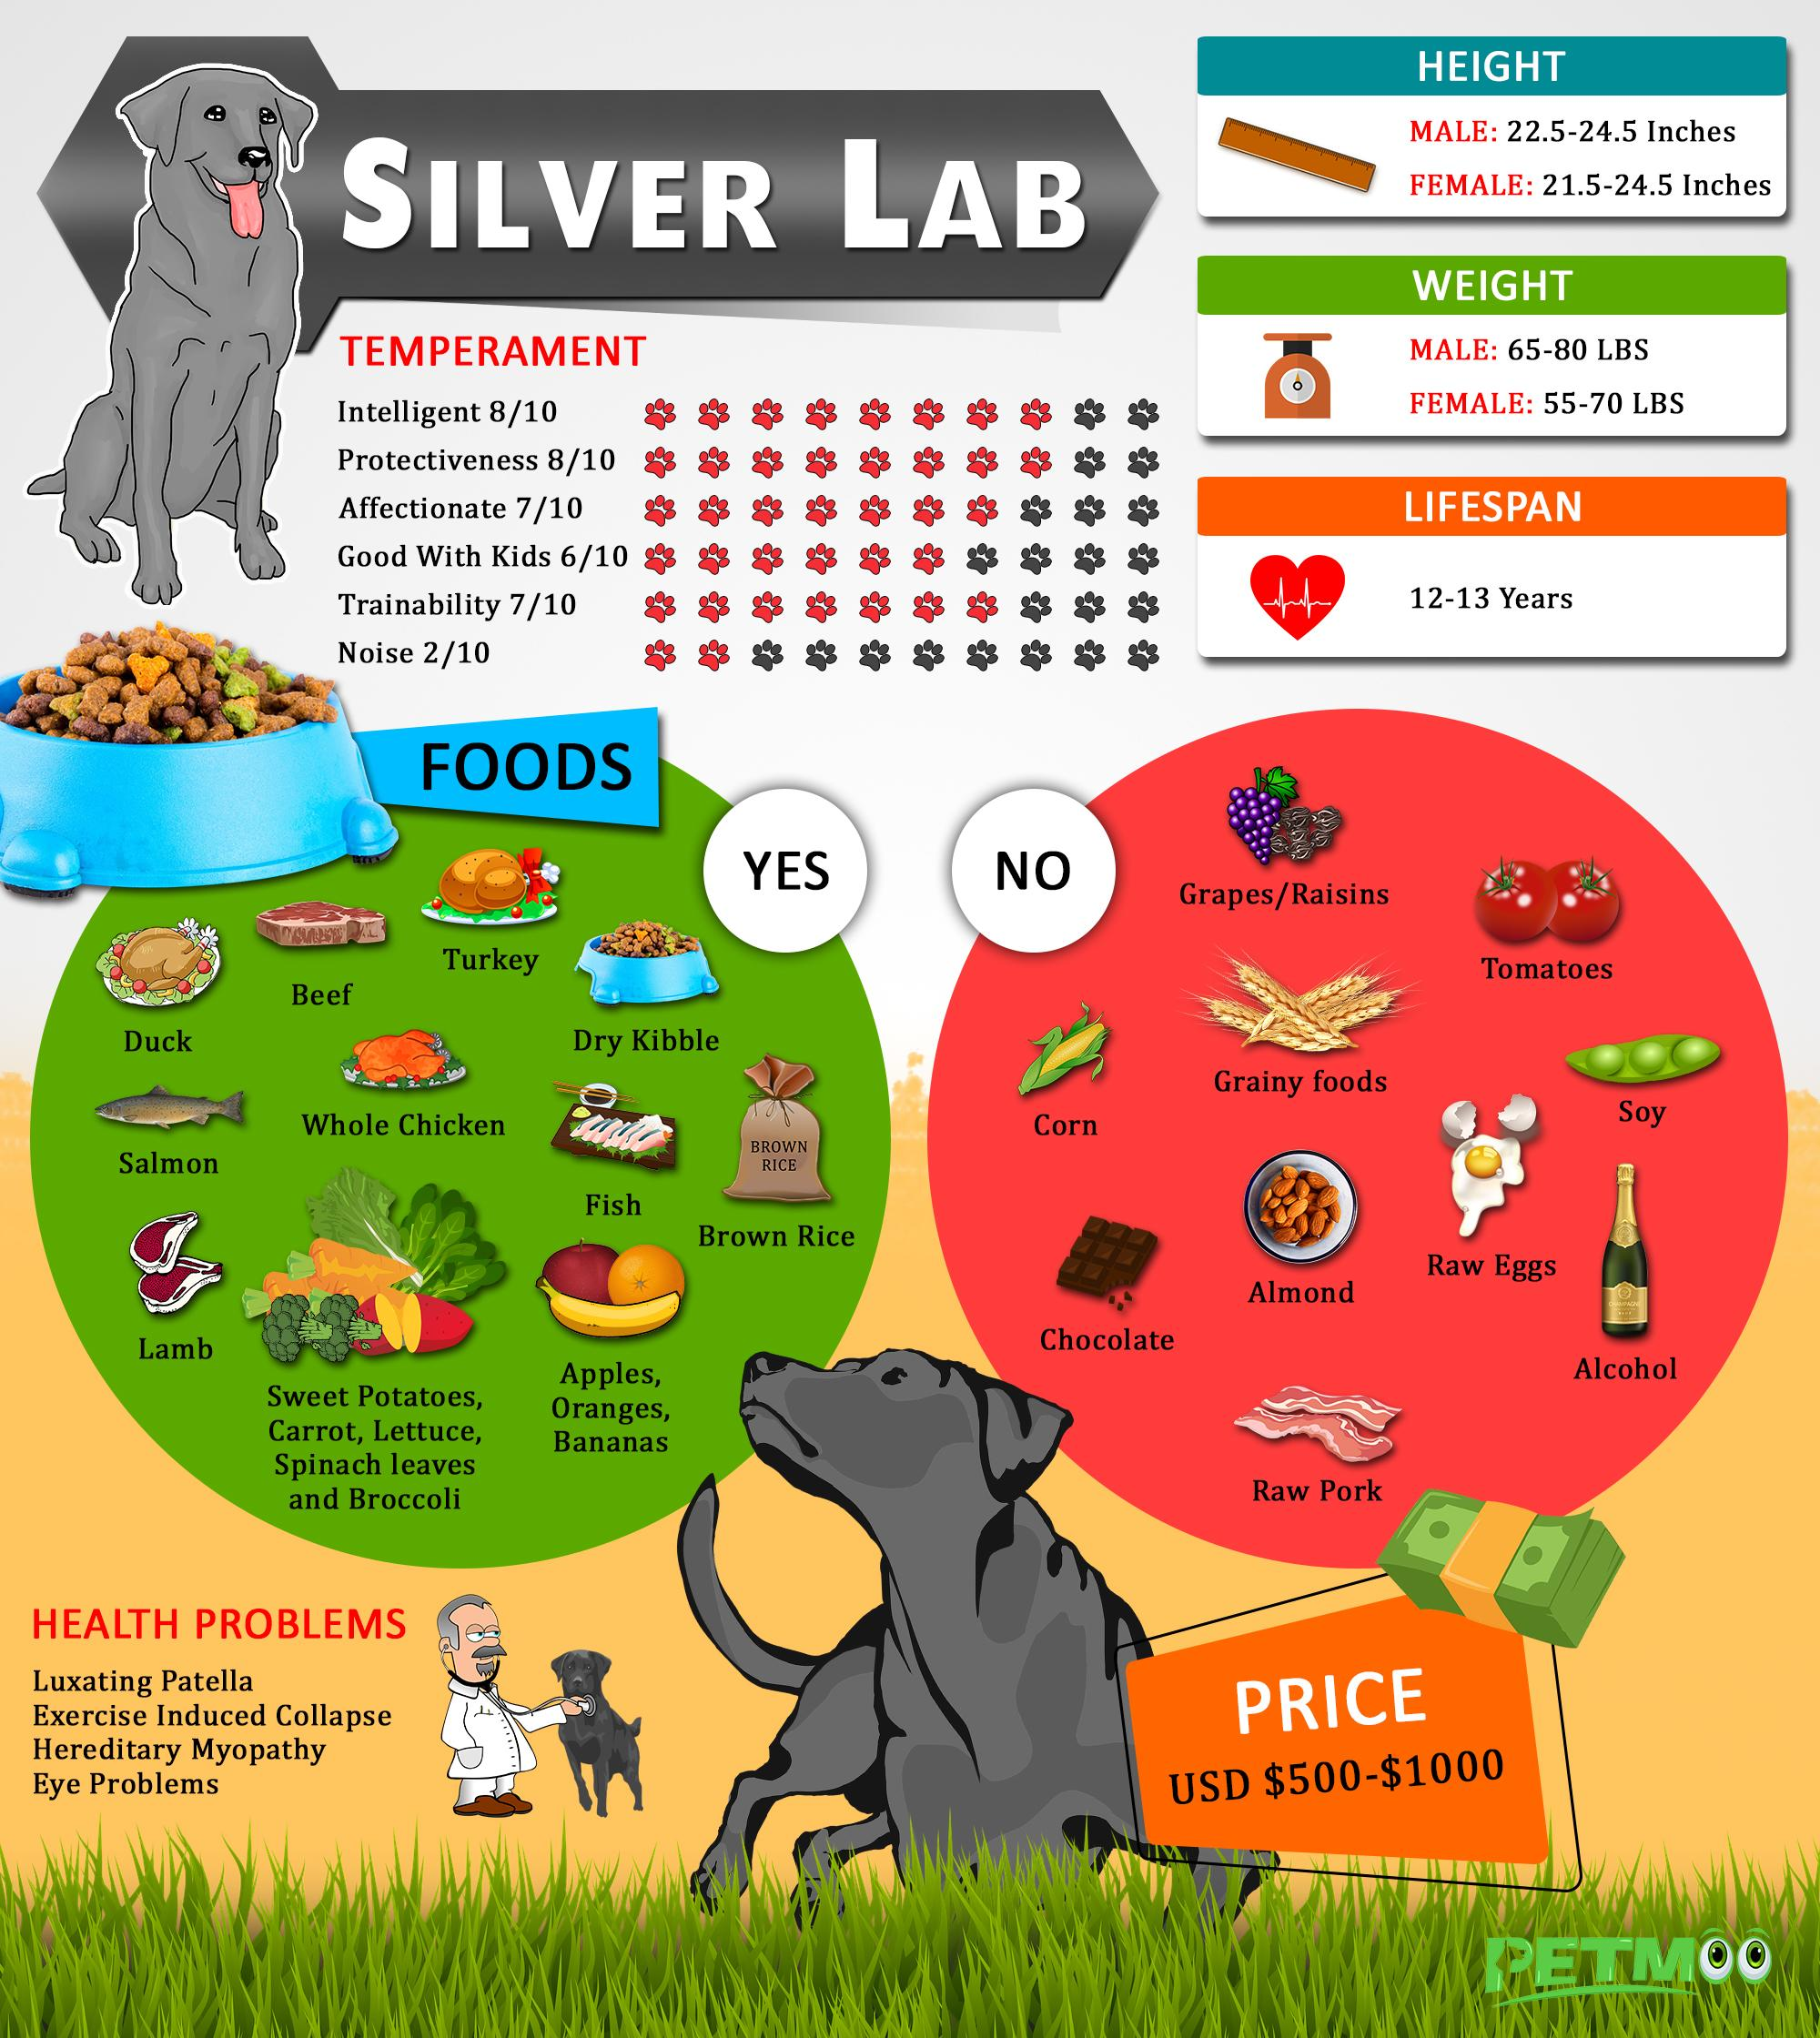 Silver Lab Infographic